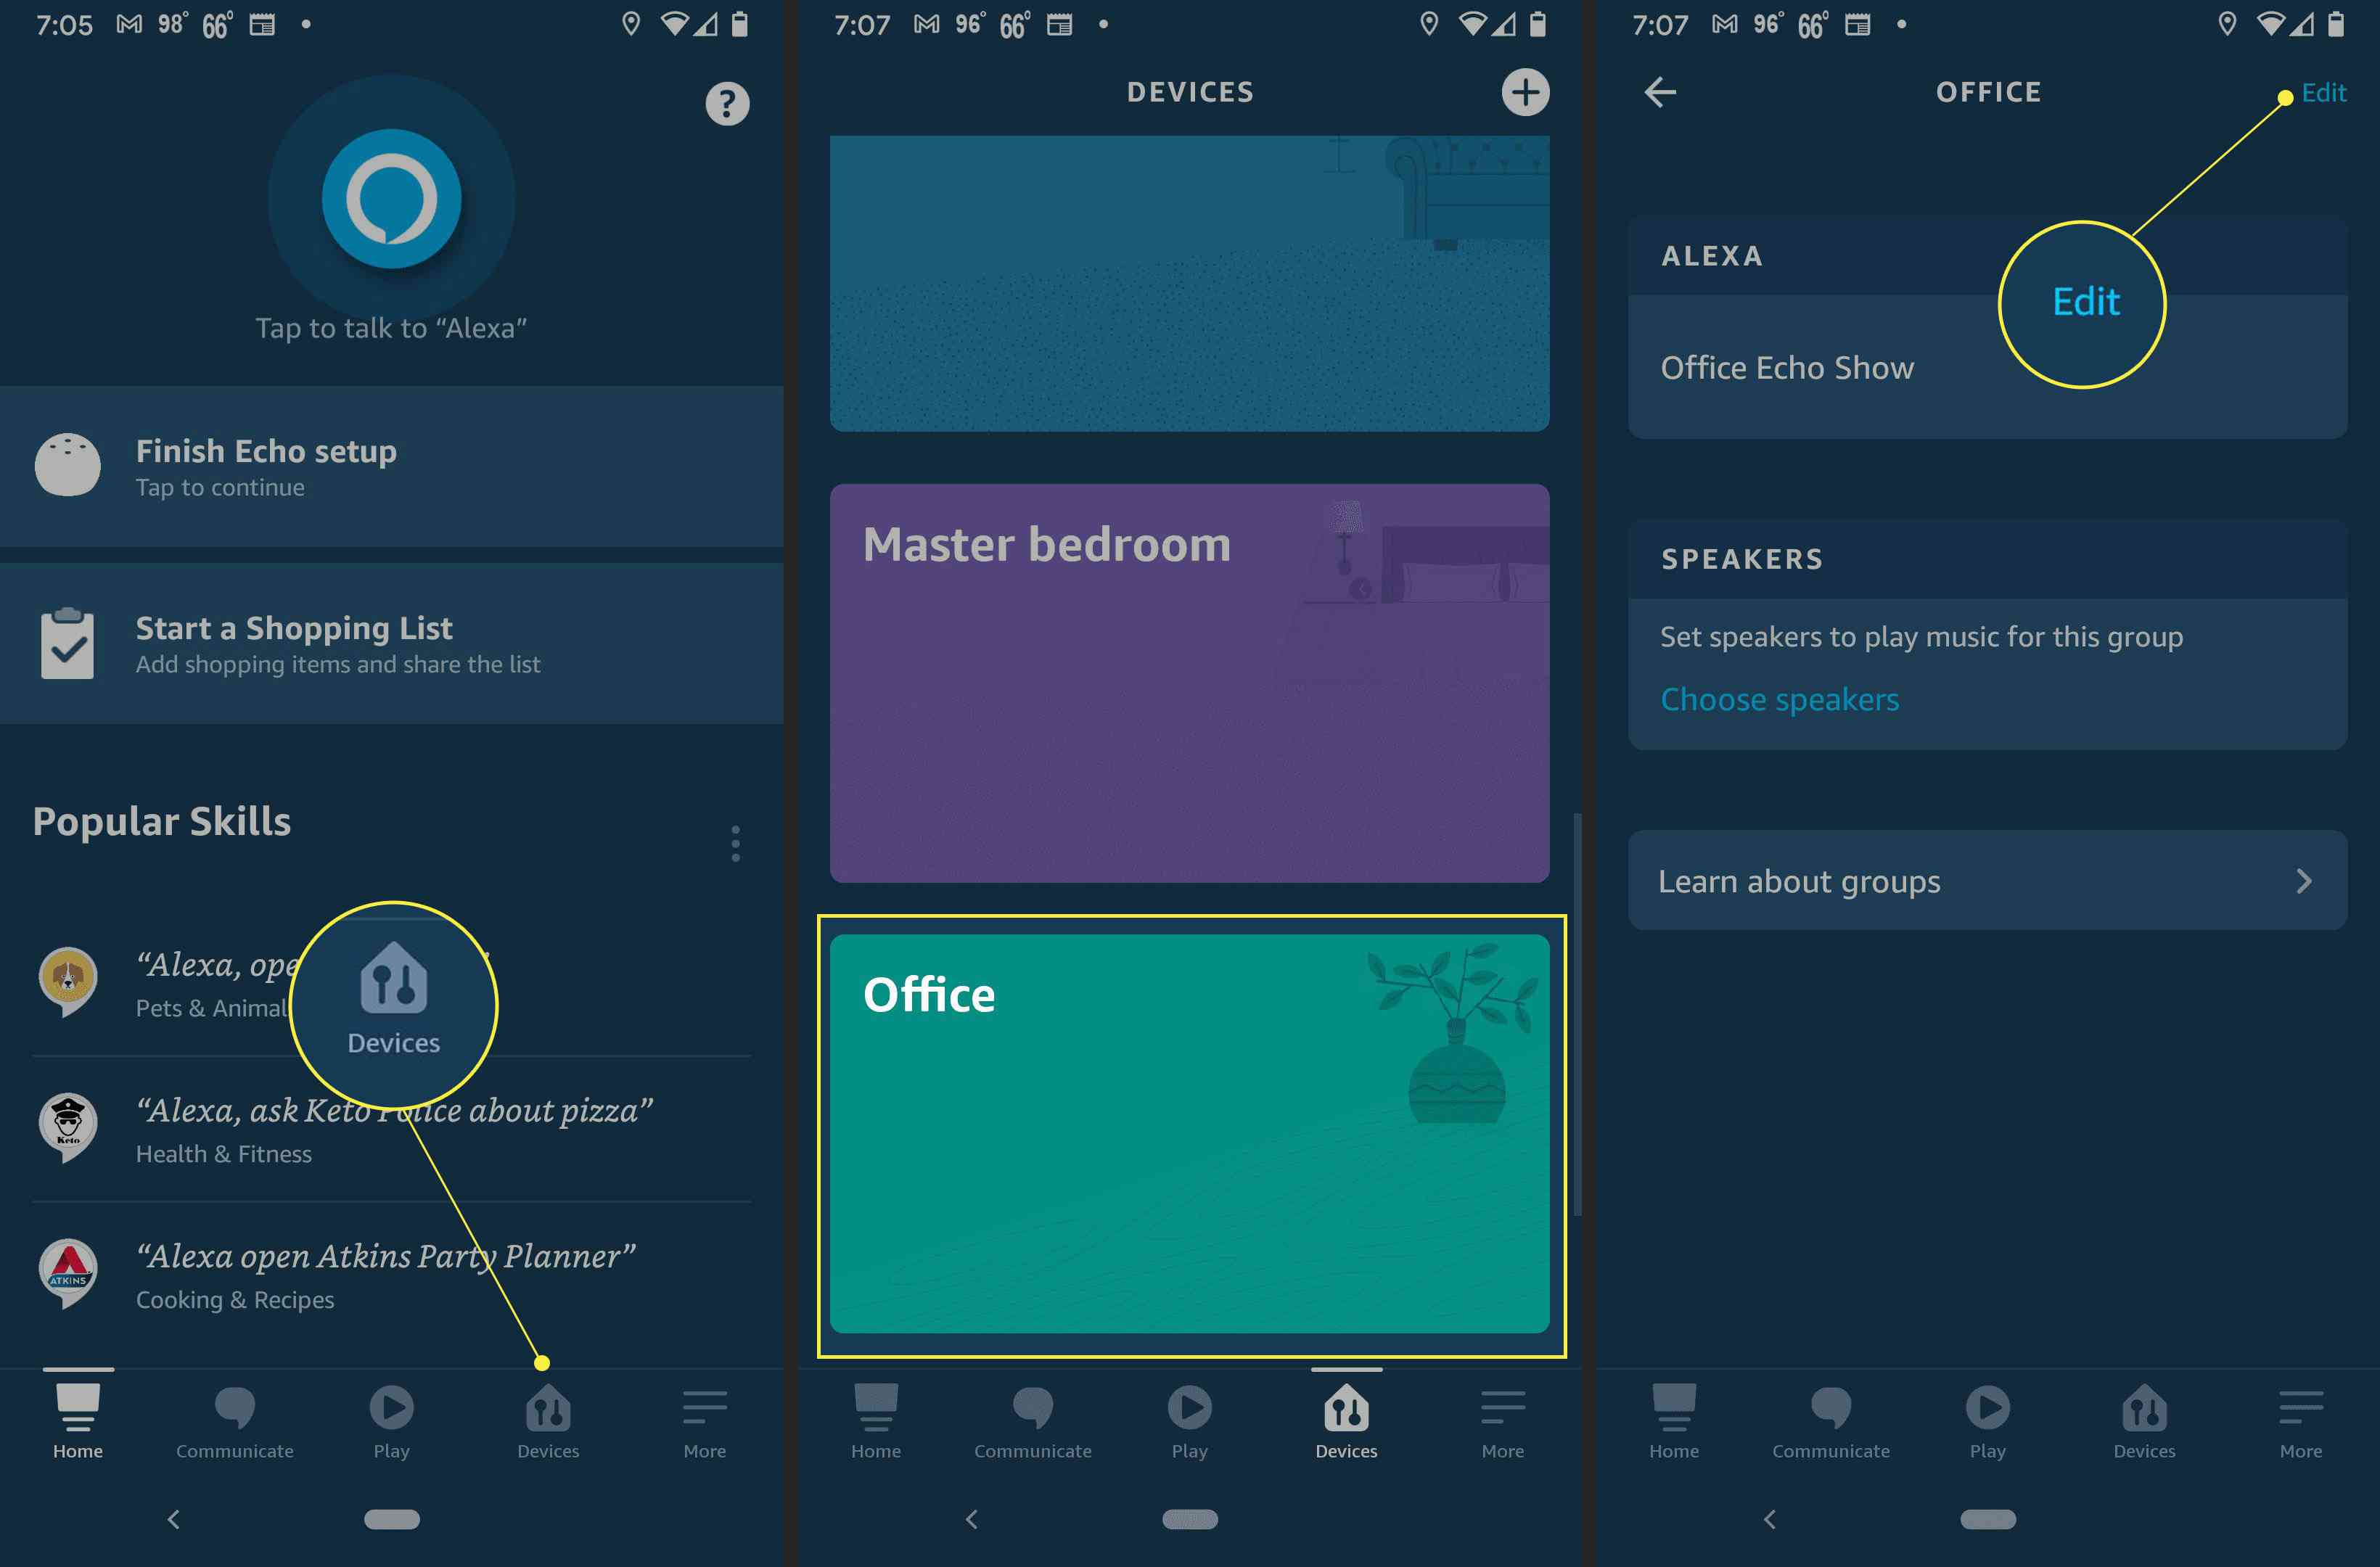 Steps to set up the temperature sensor on Amazon Echo with